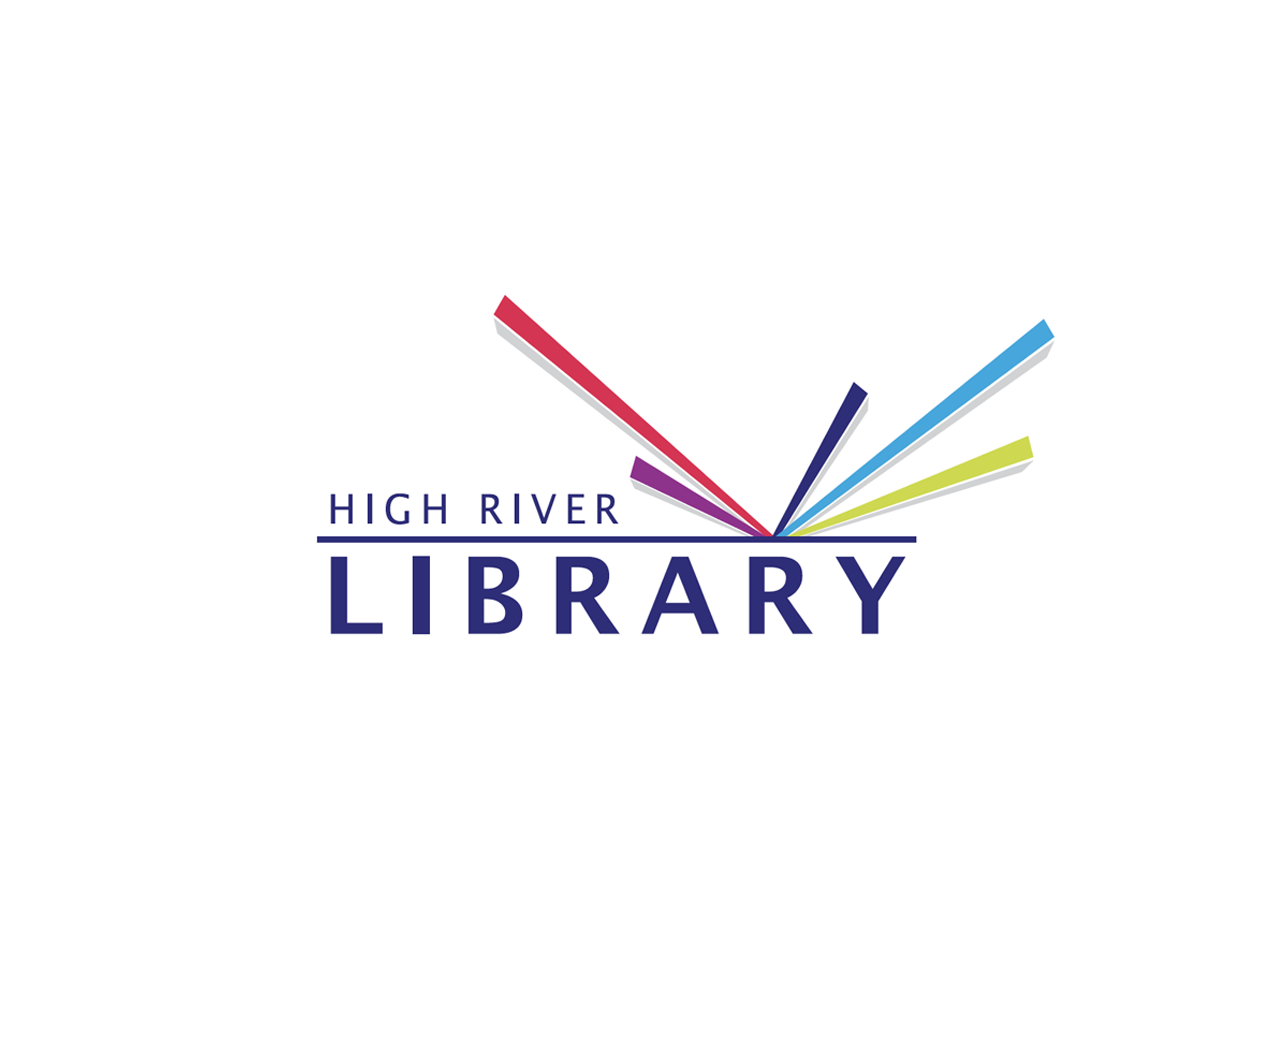 HR_Library_logo.png